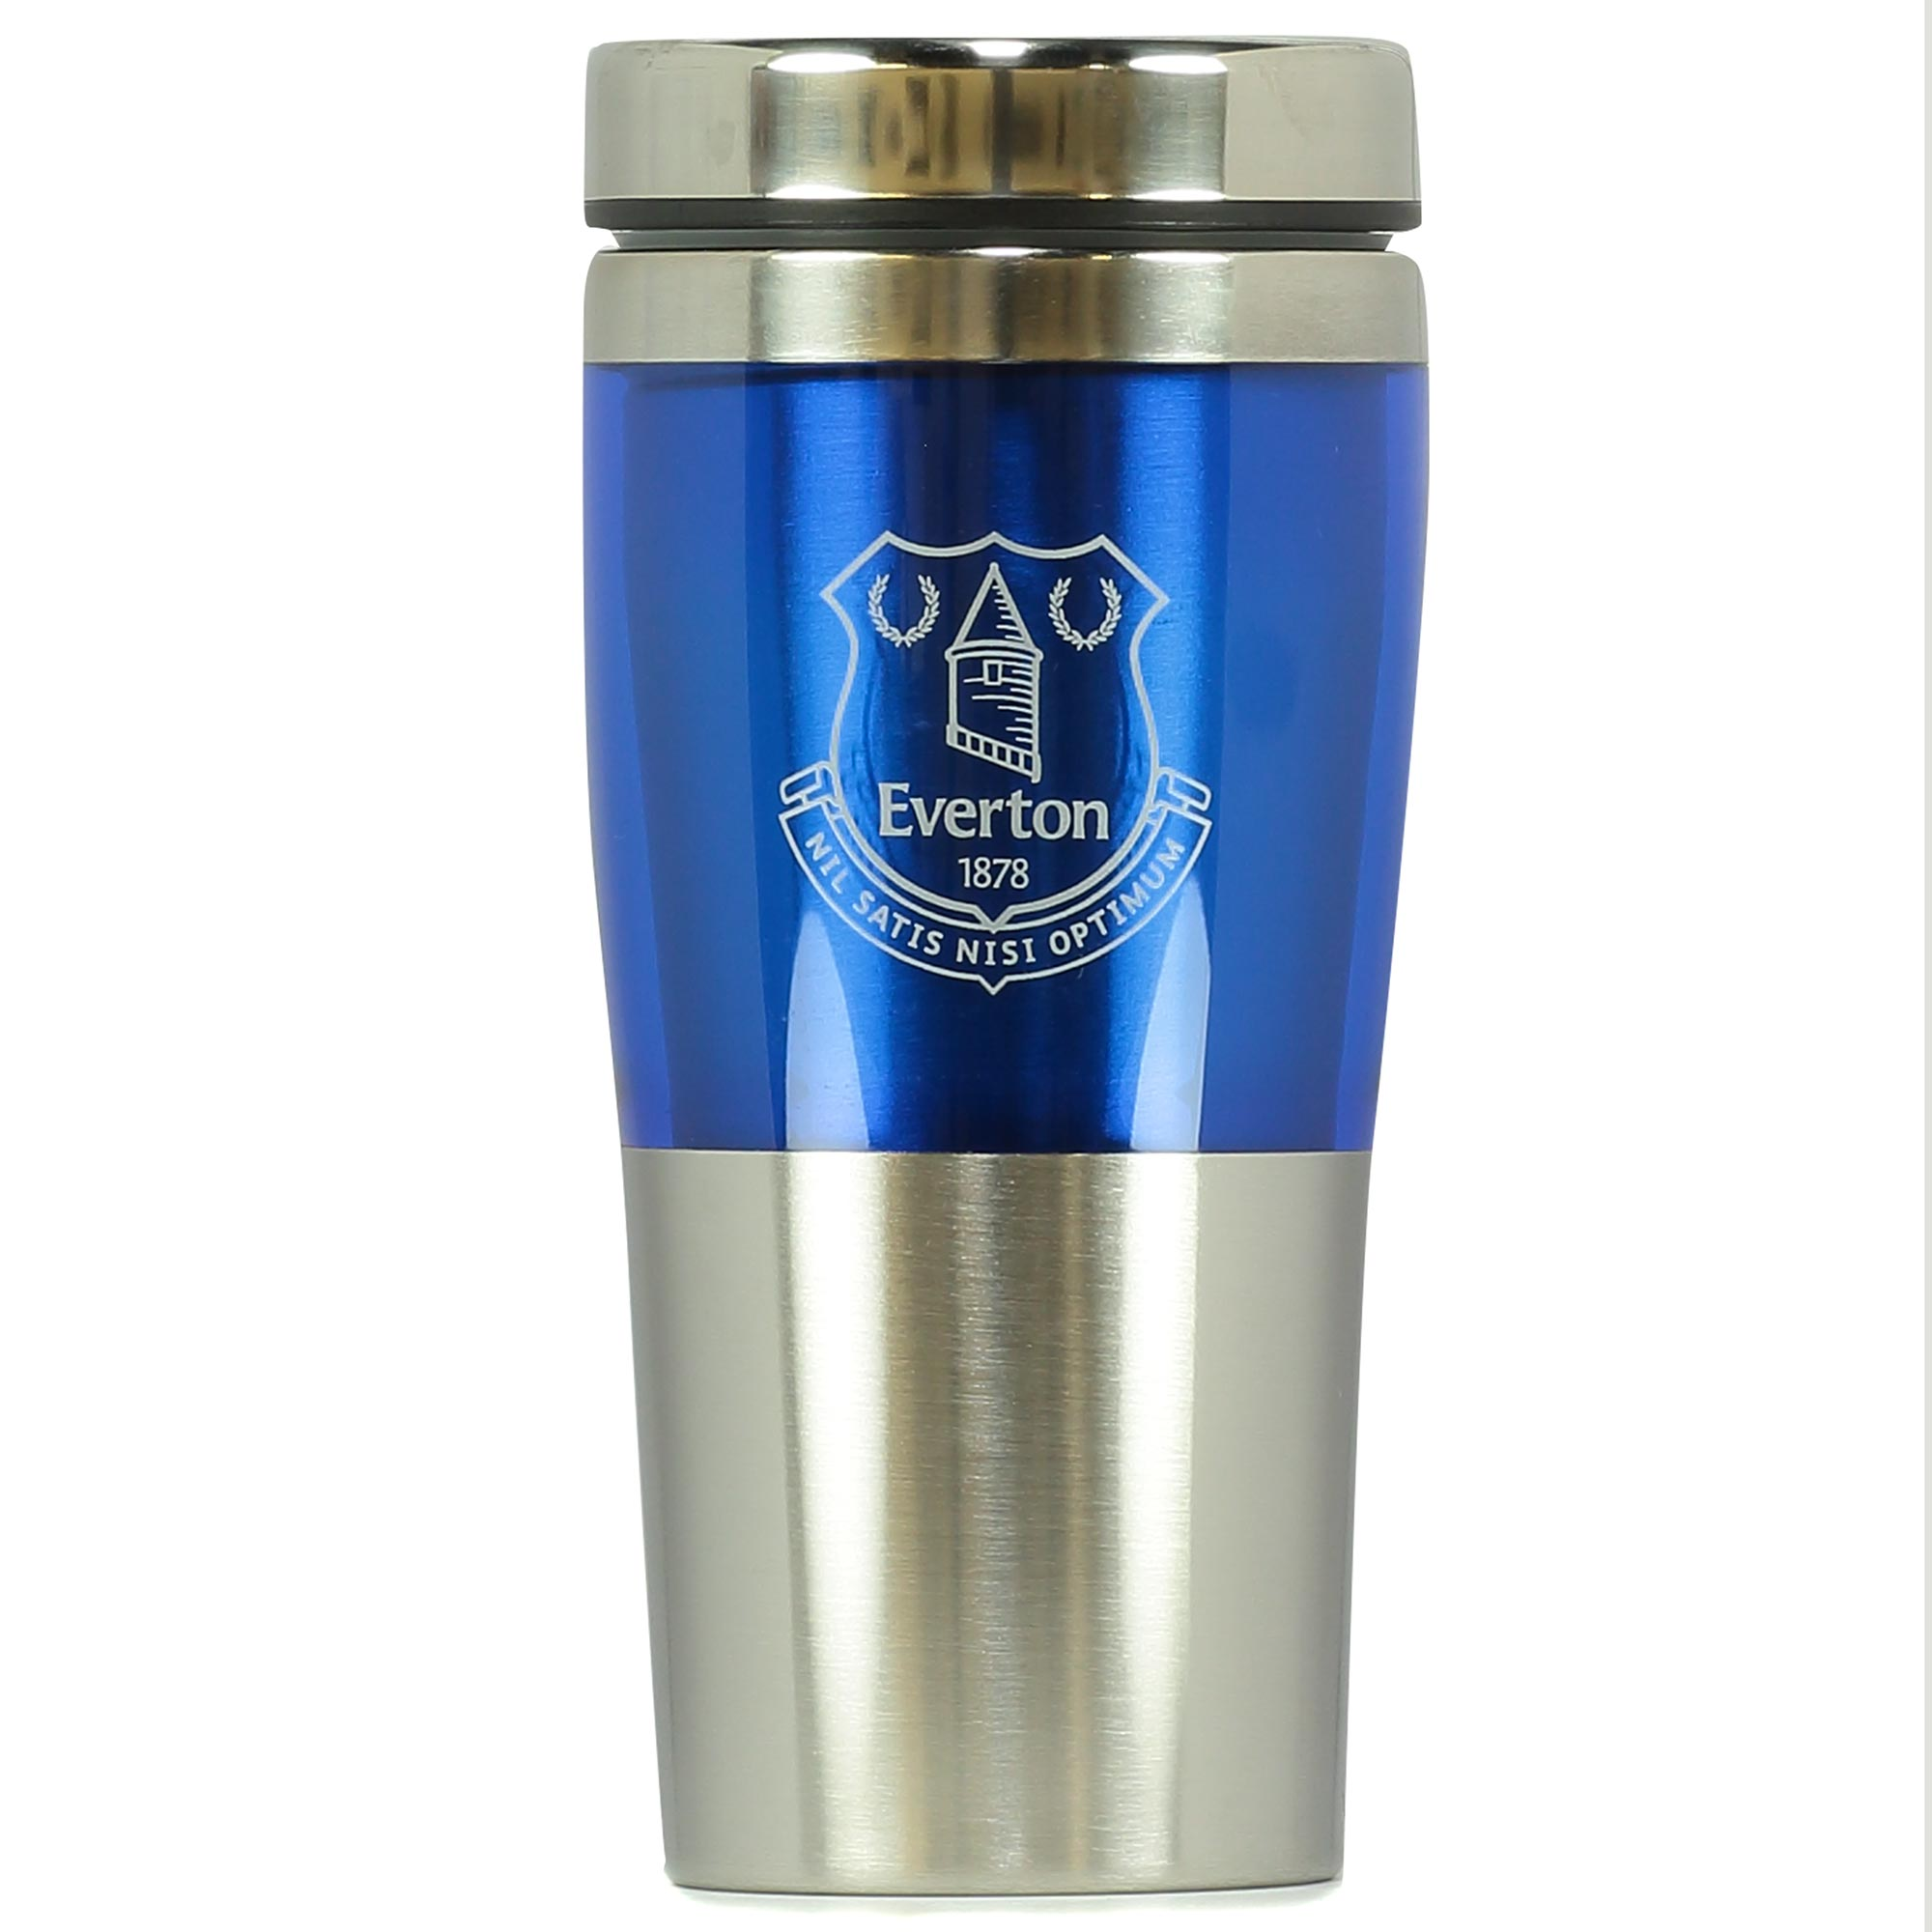 Everton Stainless Steel Travel Mug